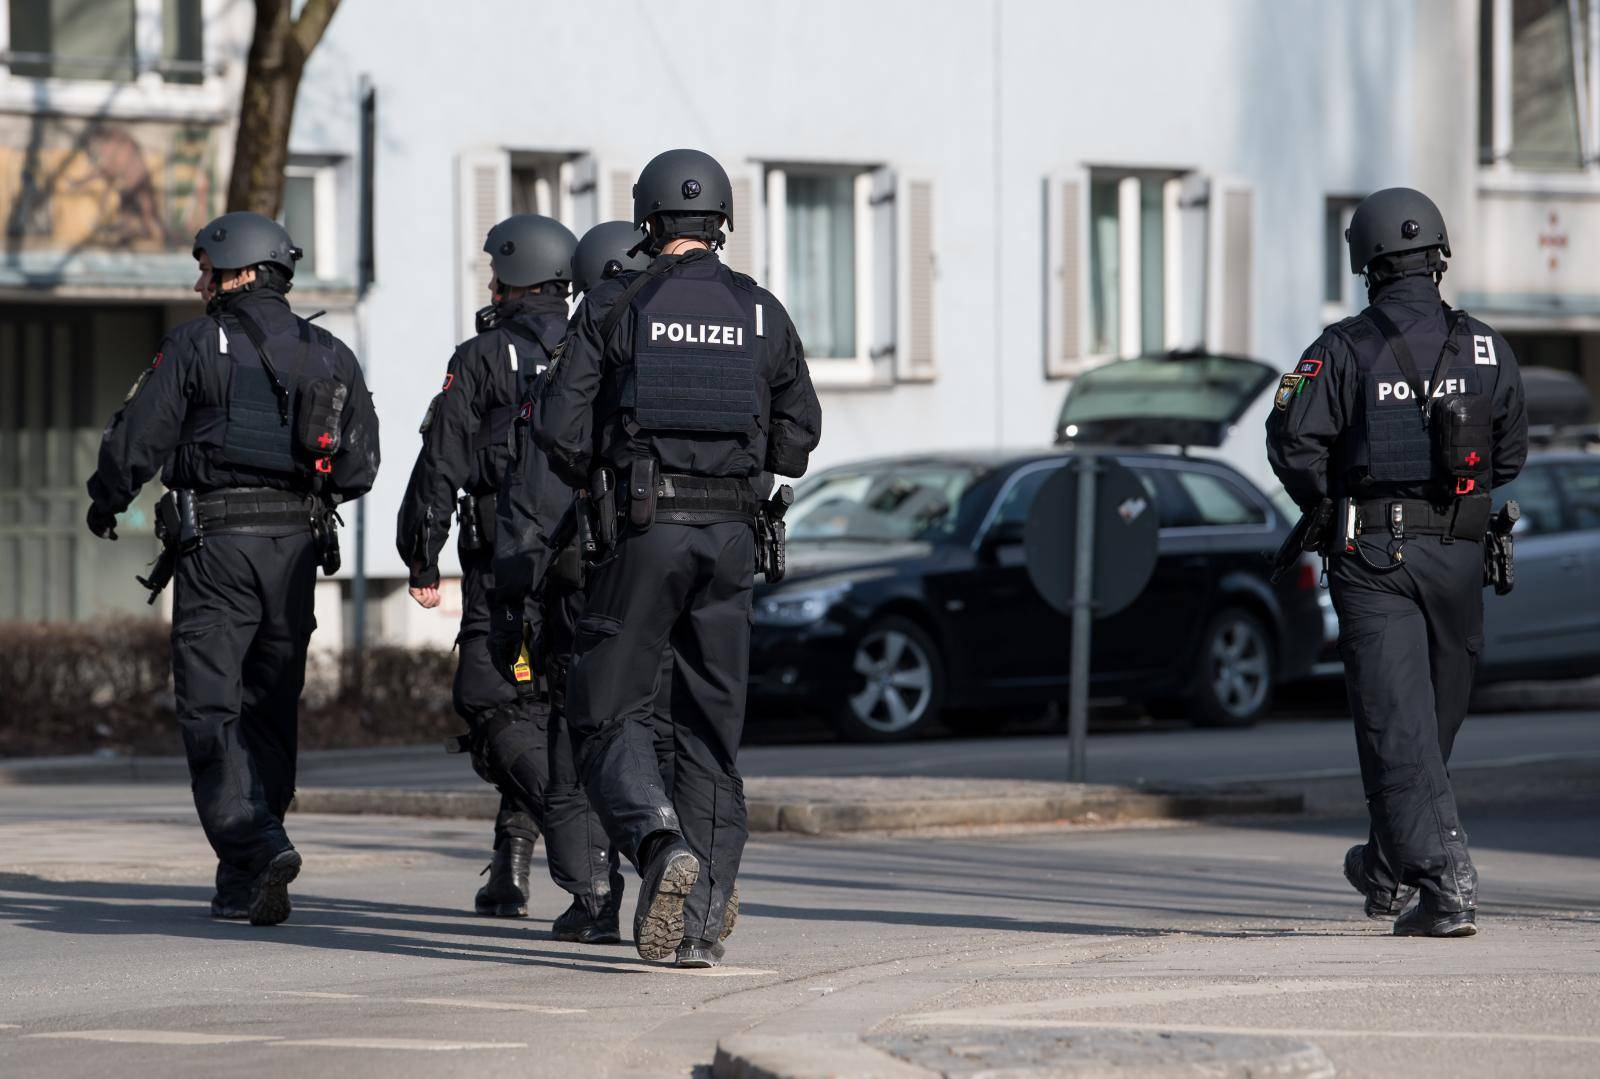 Two dead in shots on construction site in Munich